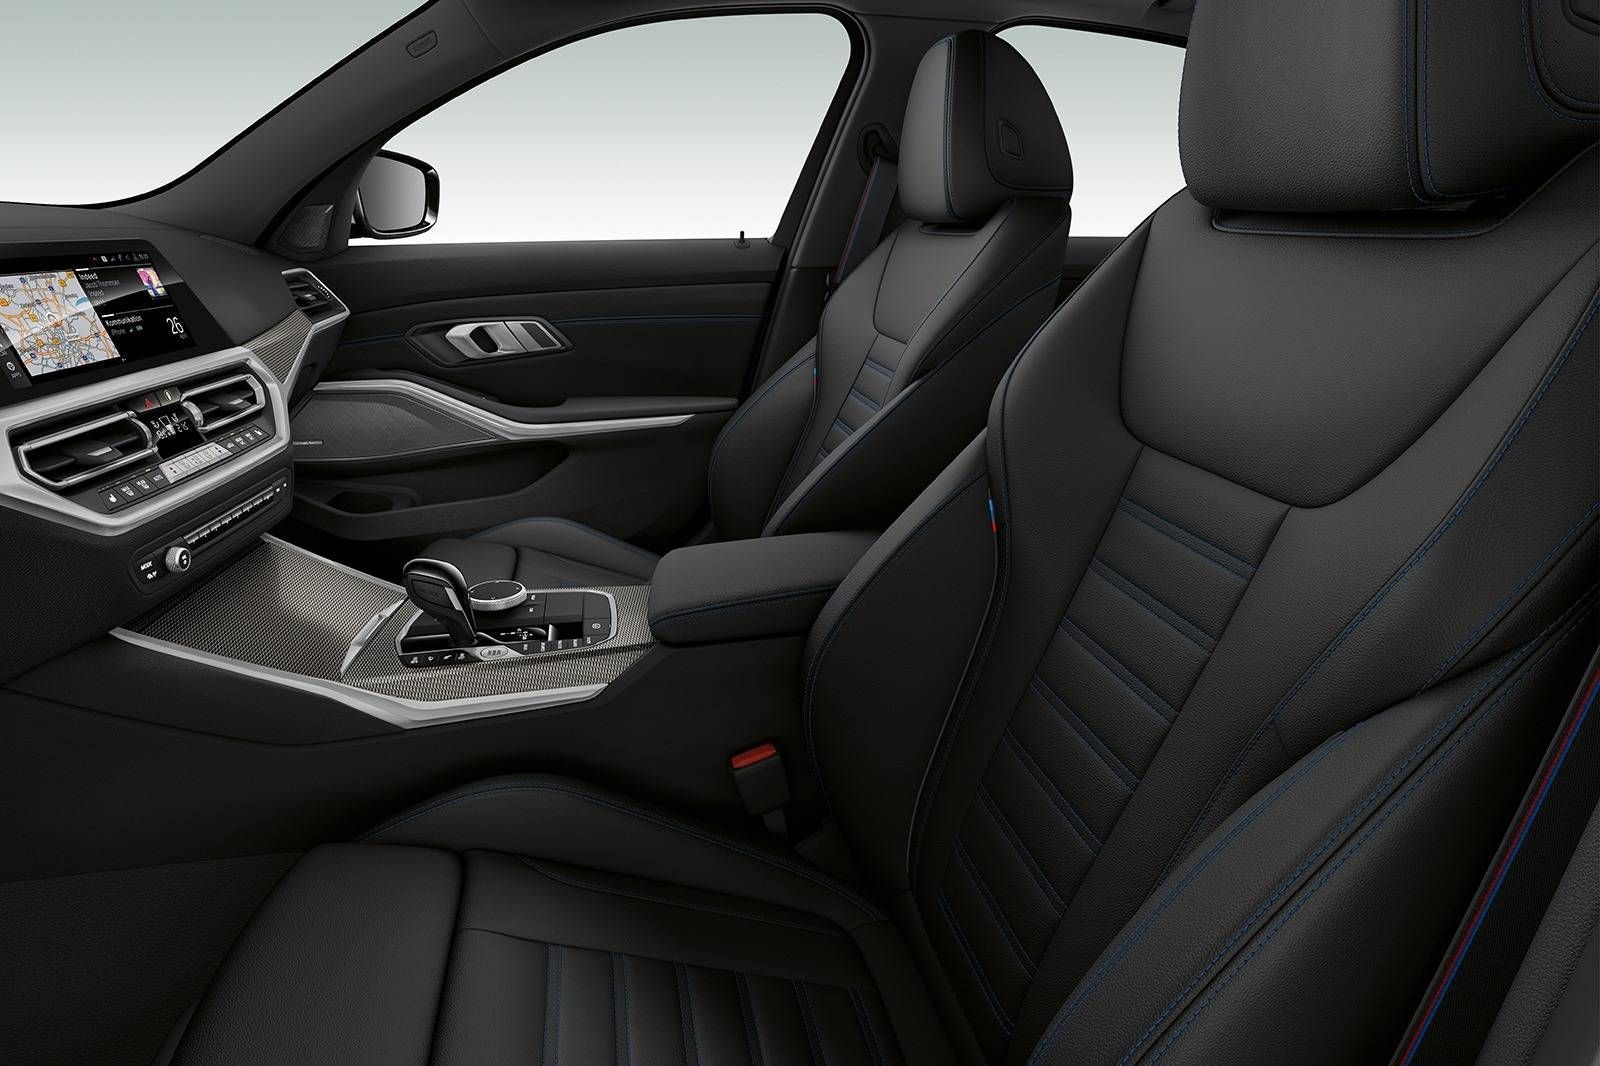 Convertible Series2020 Interior Release Touring Caraudio Bmw3series Convertible Interior R In 2020 Bmw 3 Series Bmw 3 Series Coupe Bmw 3 Series Convertible